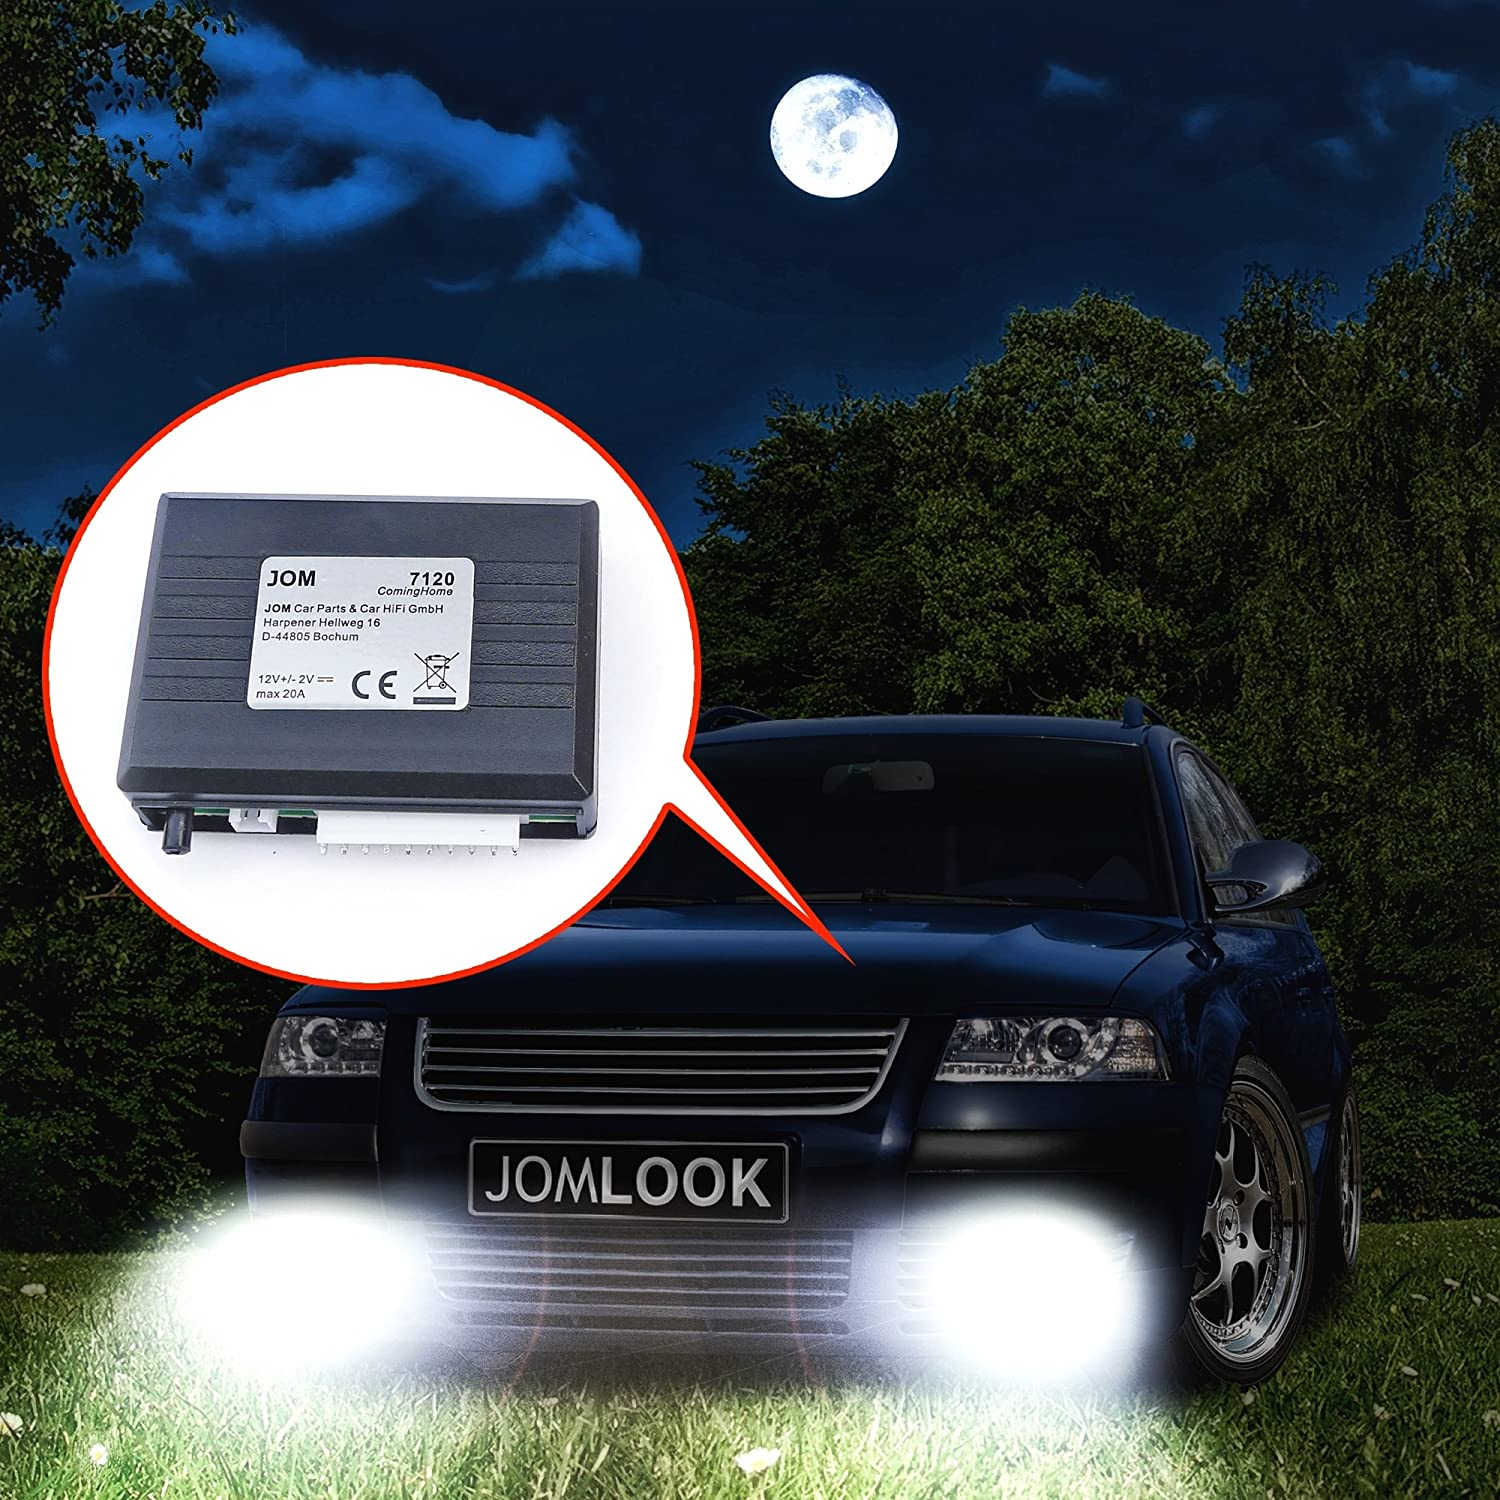 JOM Coming Home Leaving Home Modul mit Lichtsensor Smart